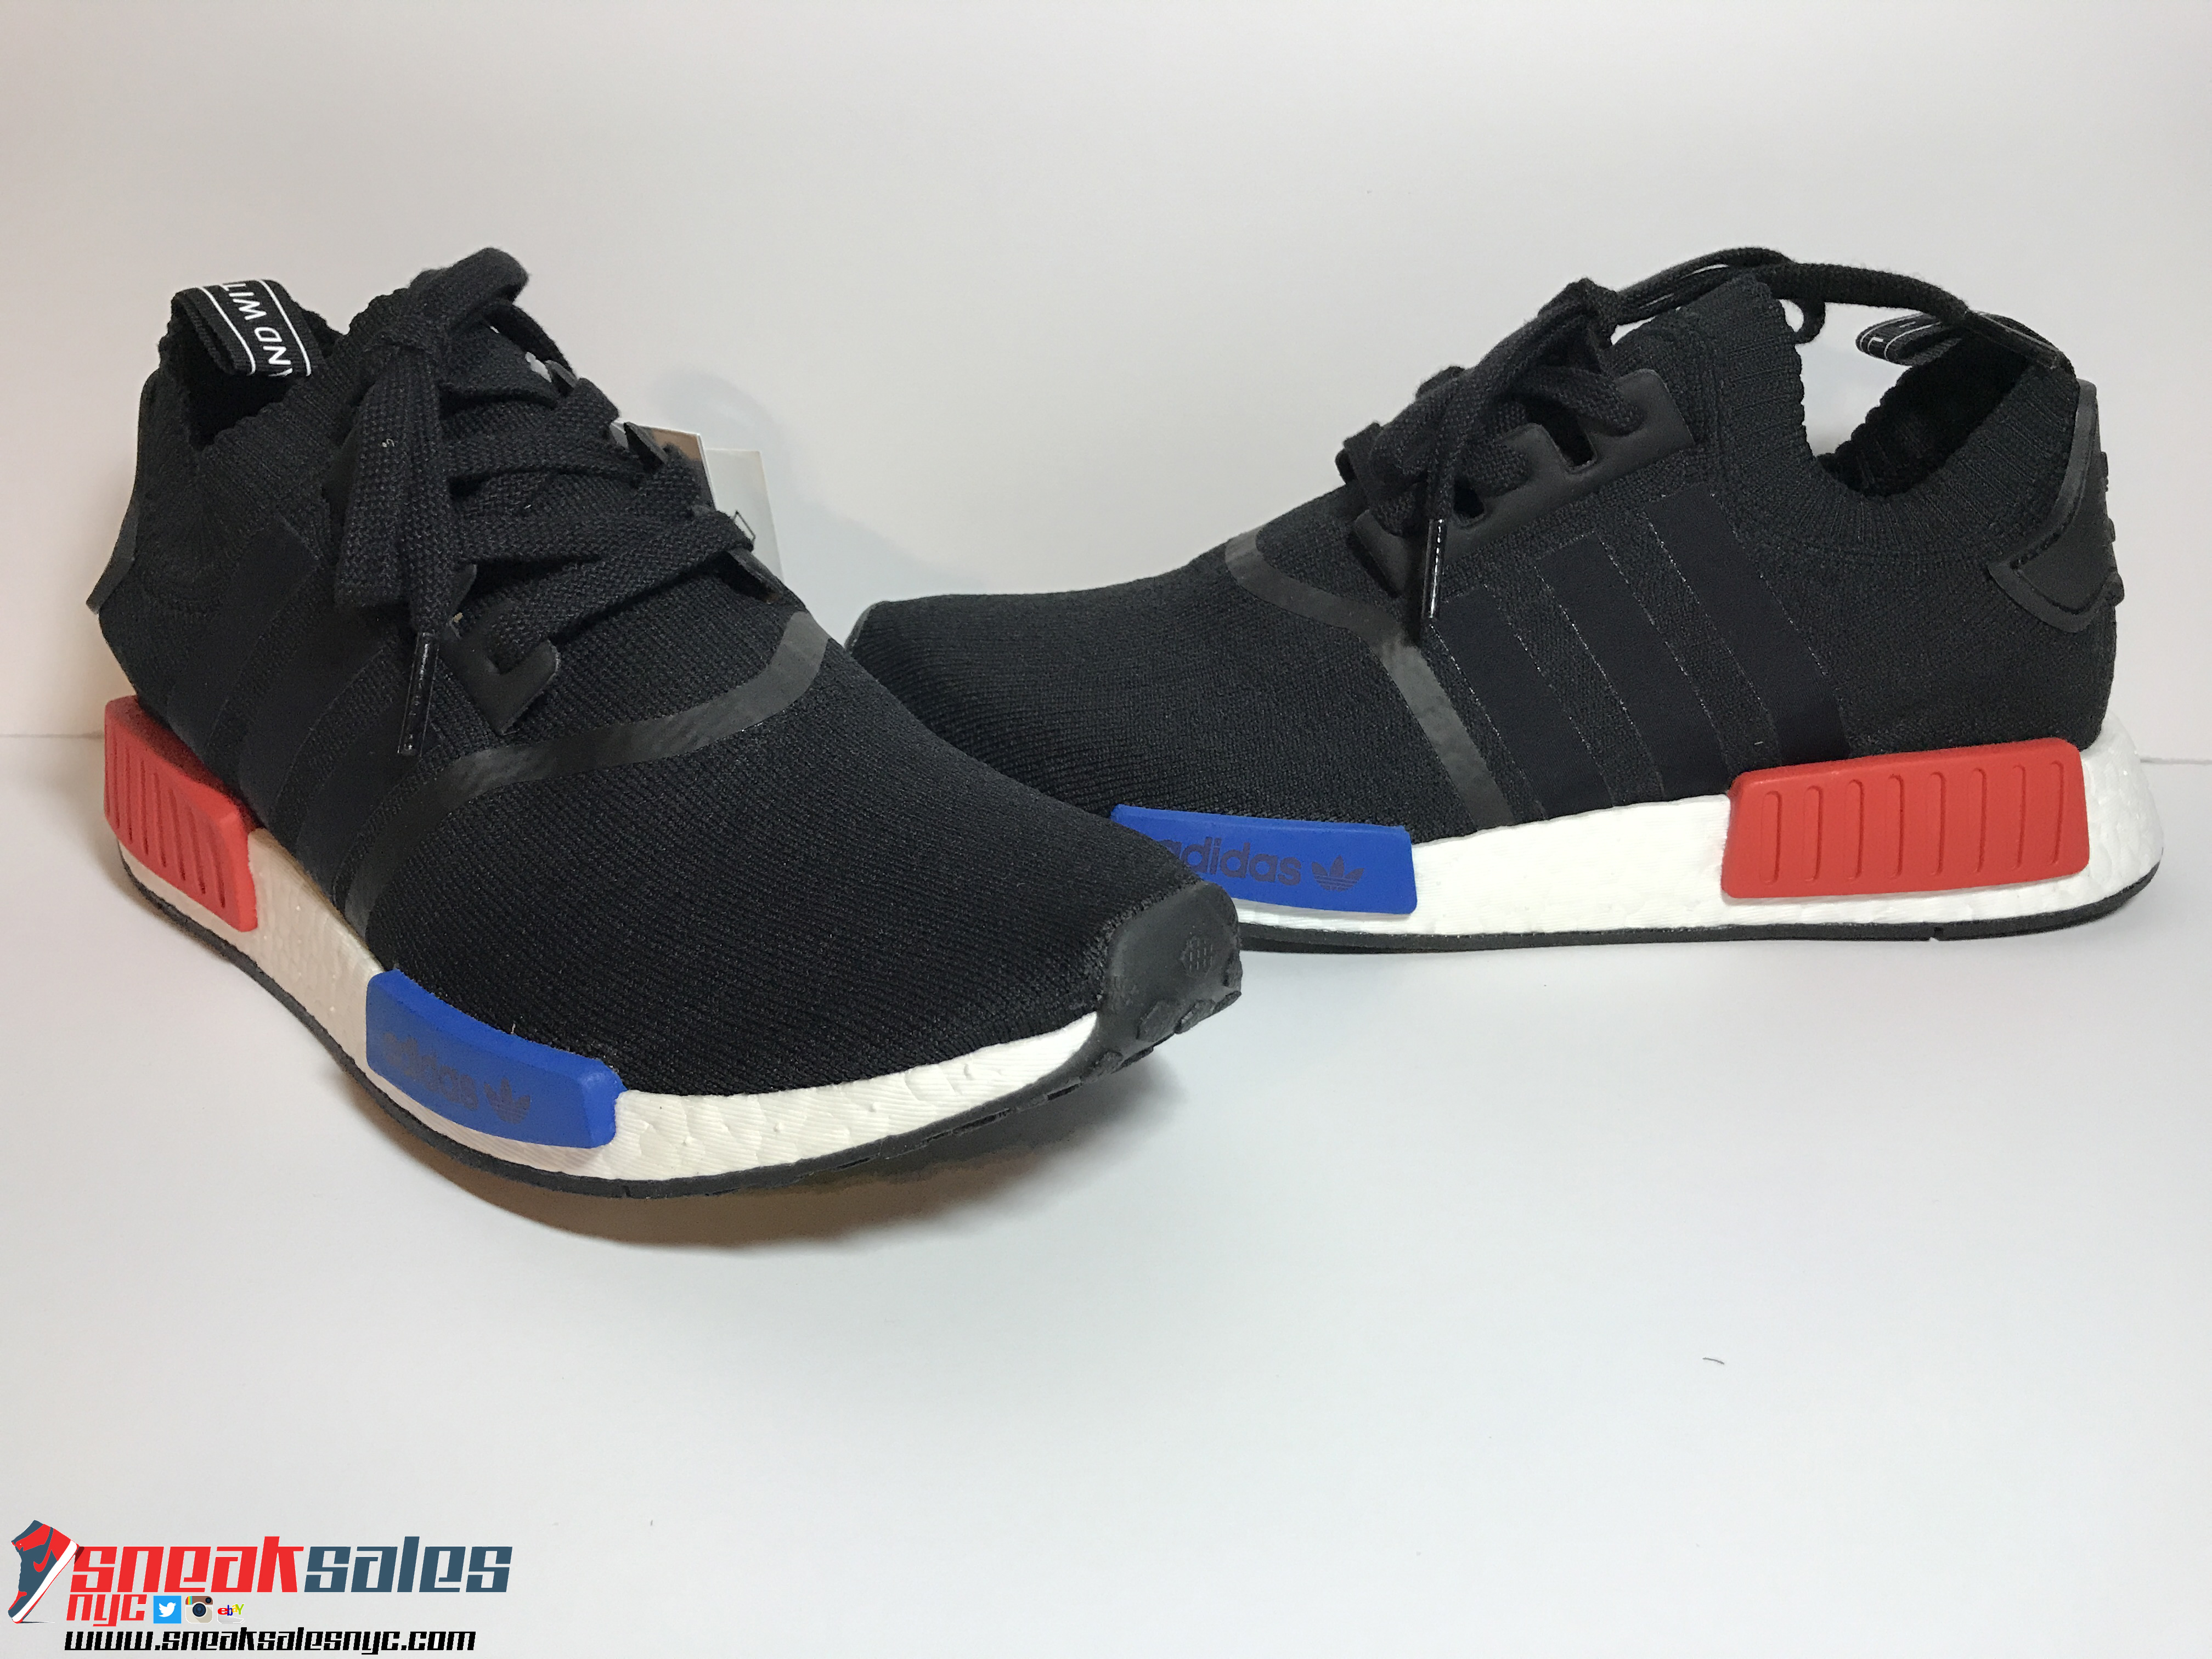 d4bd259db Adidas Adidas NMD R1 PK OG (2017 Release) Size 9.5 - Low-Top Sneakers for  Sale - Grailed